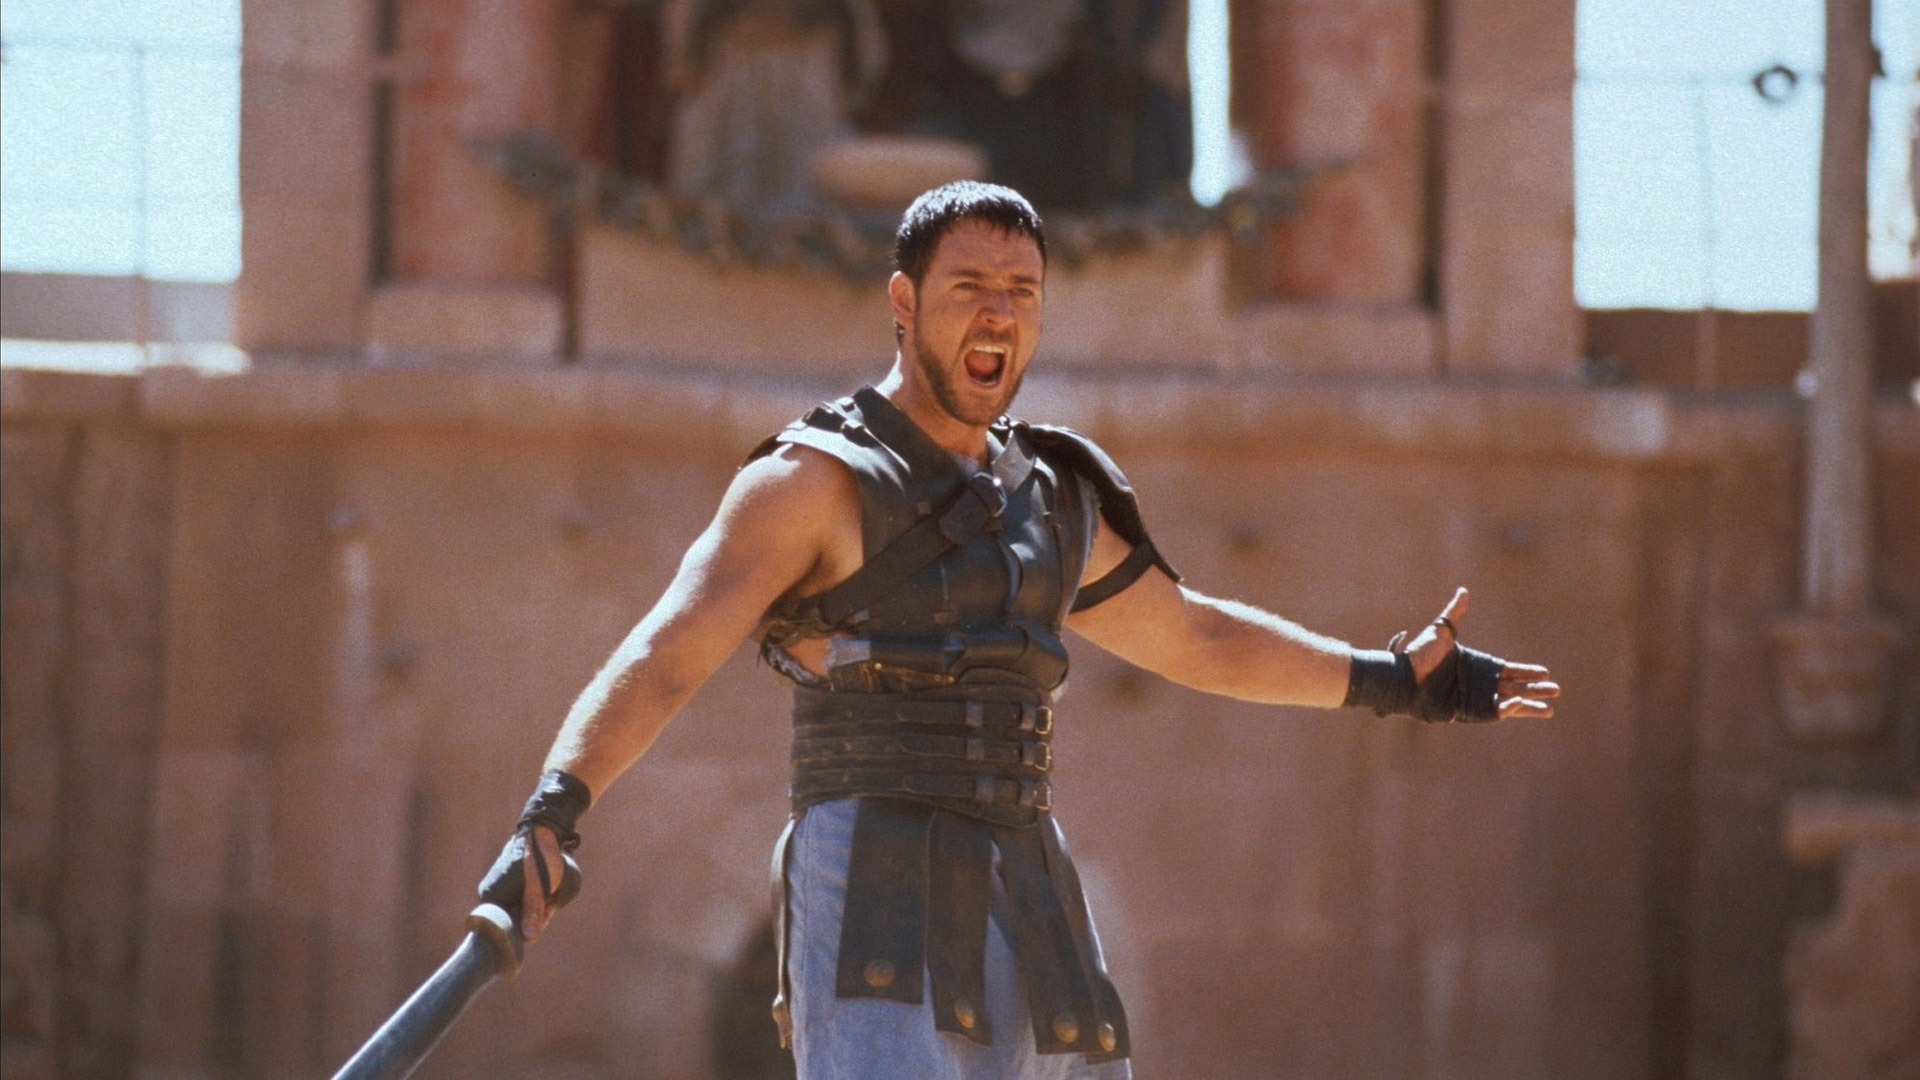 Apparently, There's Going to Be a 'Gladiator' Sequel Set Decades Later